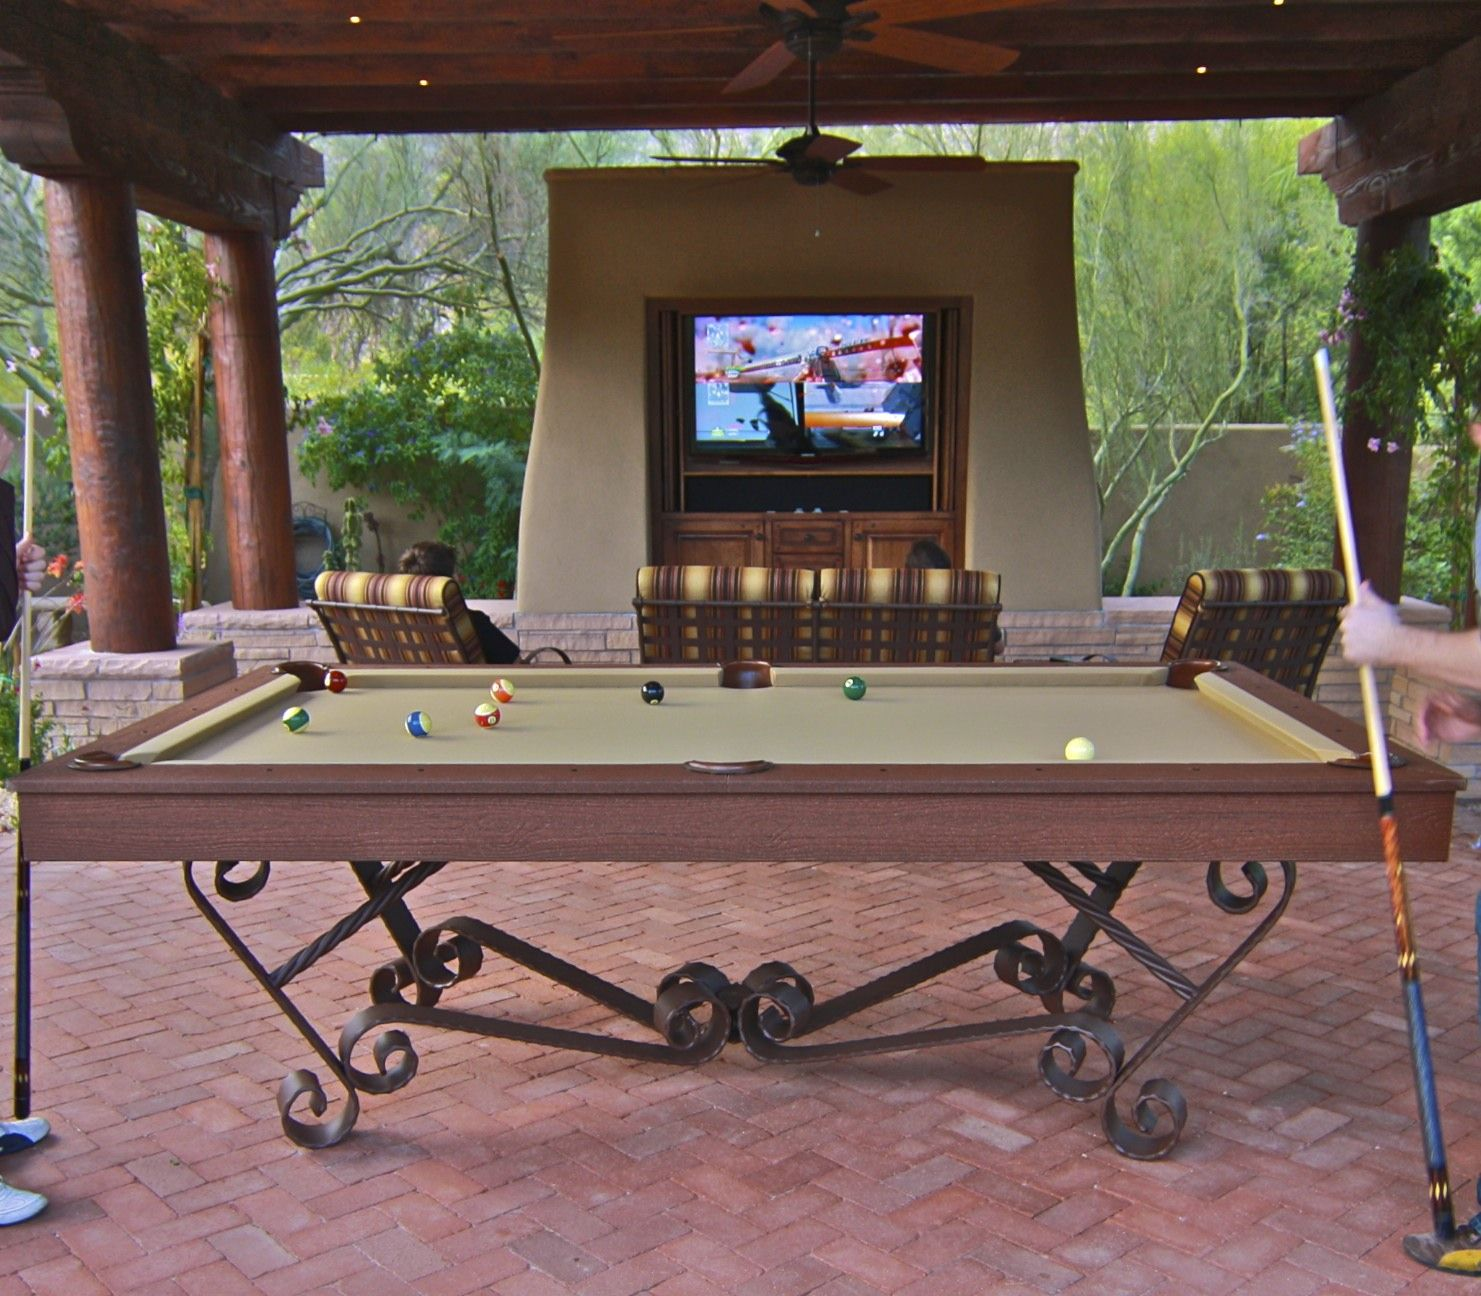 Pool table outdoors how awesome but adjust shots for for Garden pool table room